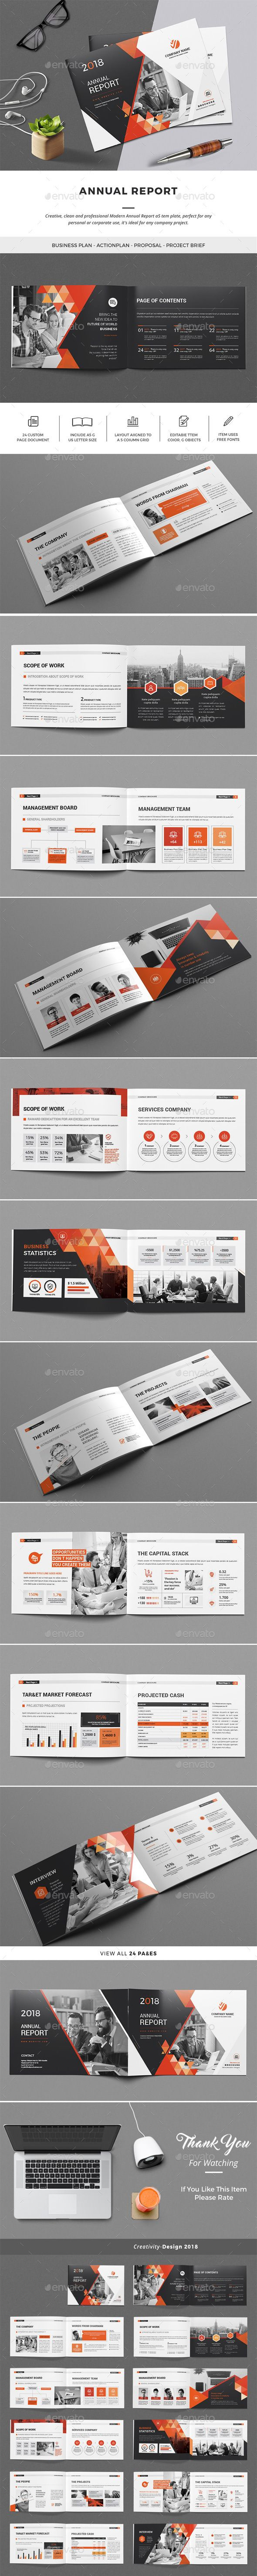 Annual Report — InDesign INDD #identity #professional • Download ➝ https://graphicriver.net/item/annual-report/21400553?ref=pxcr